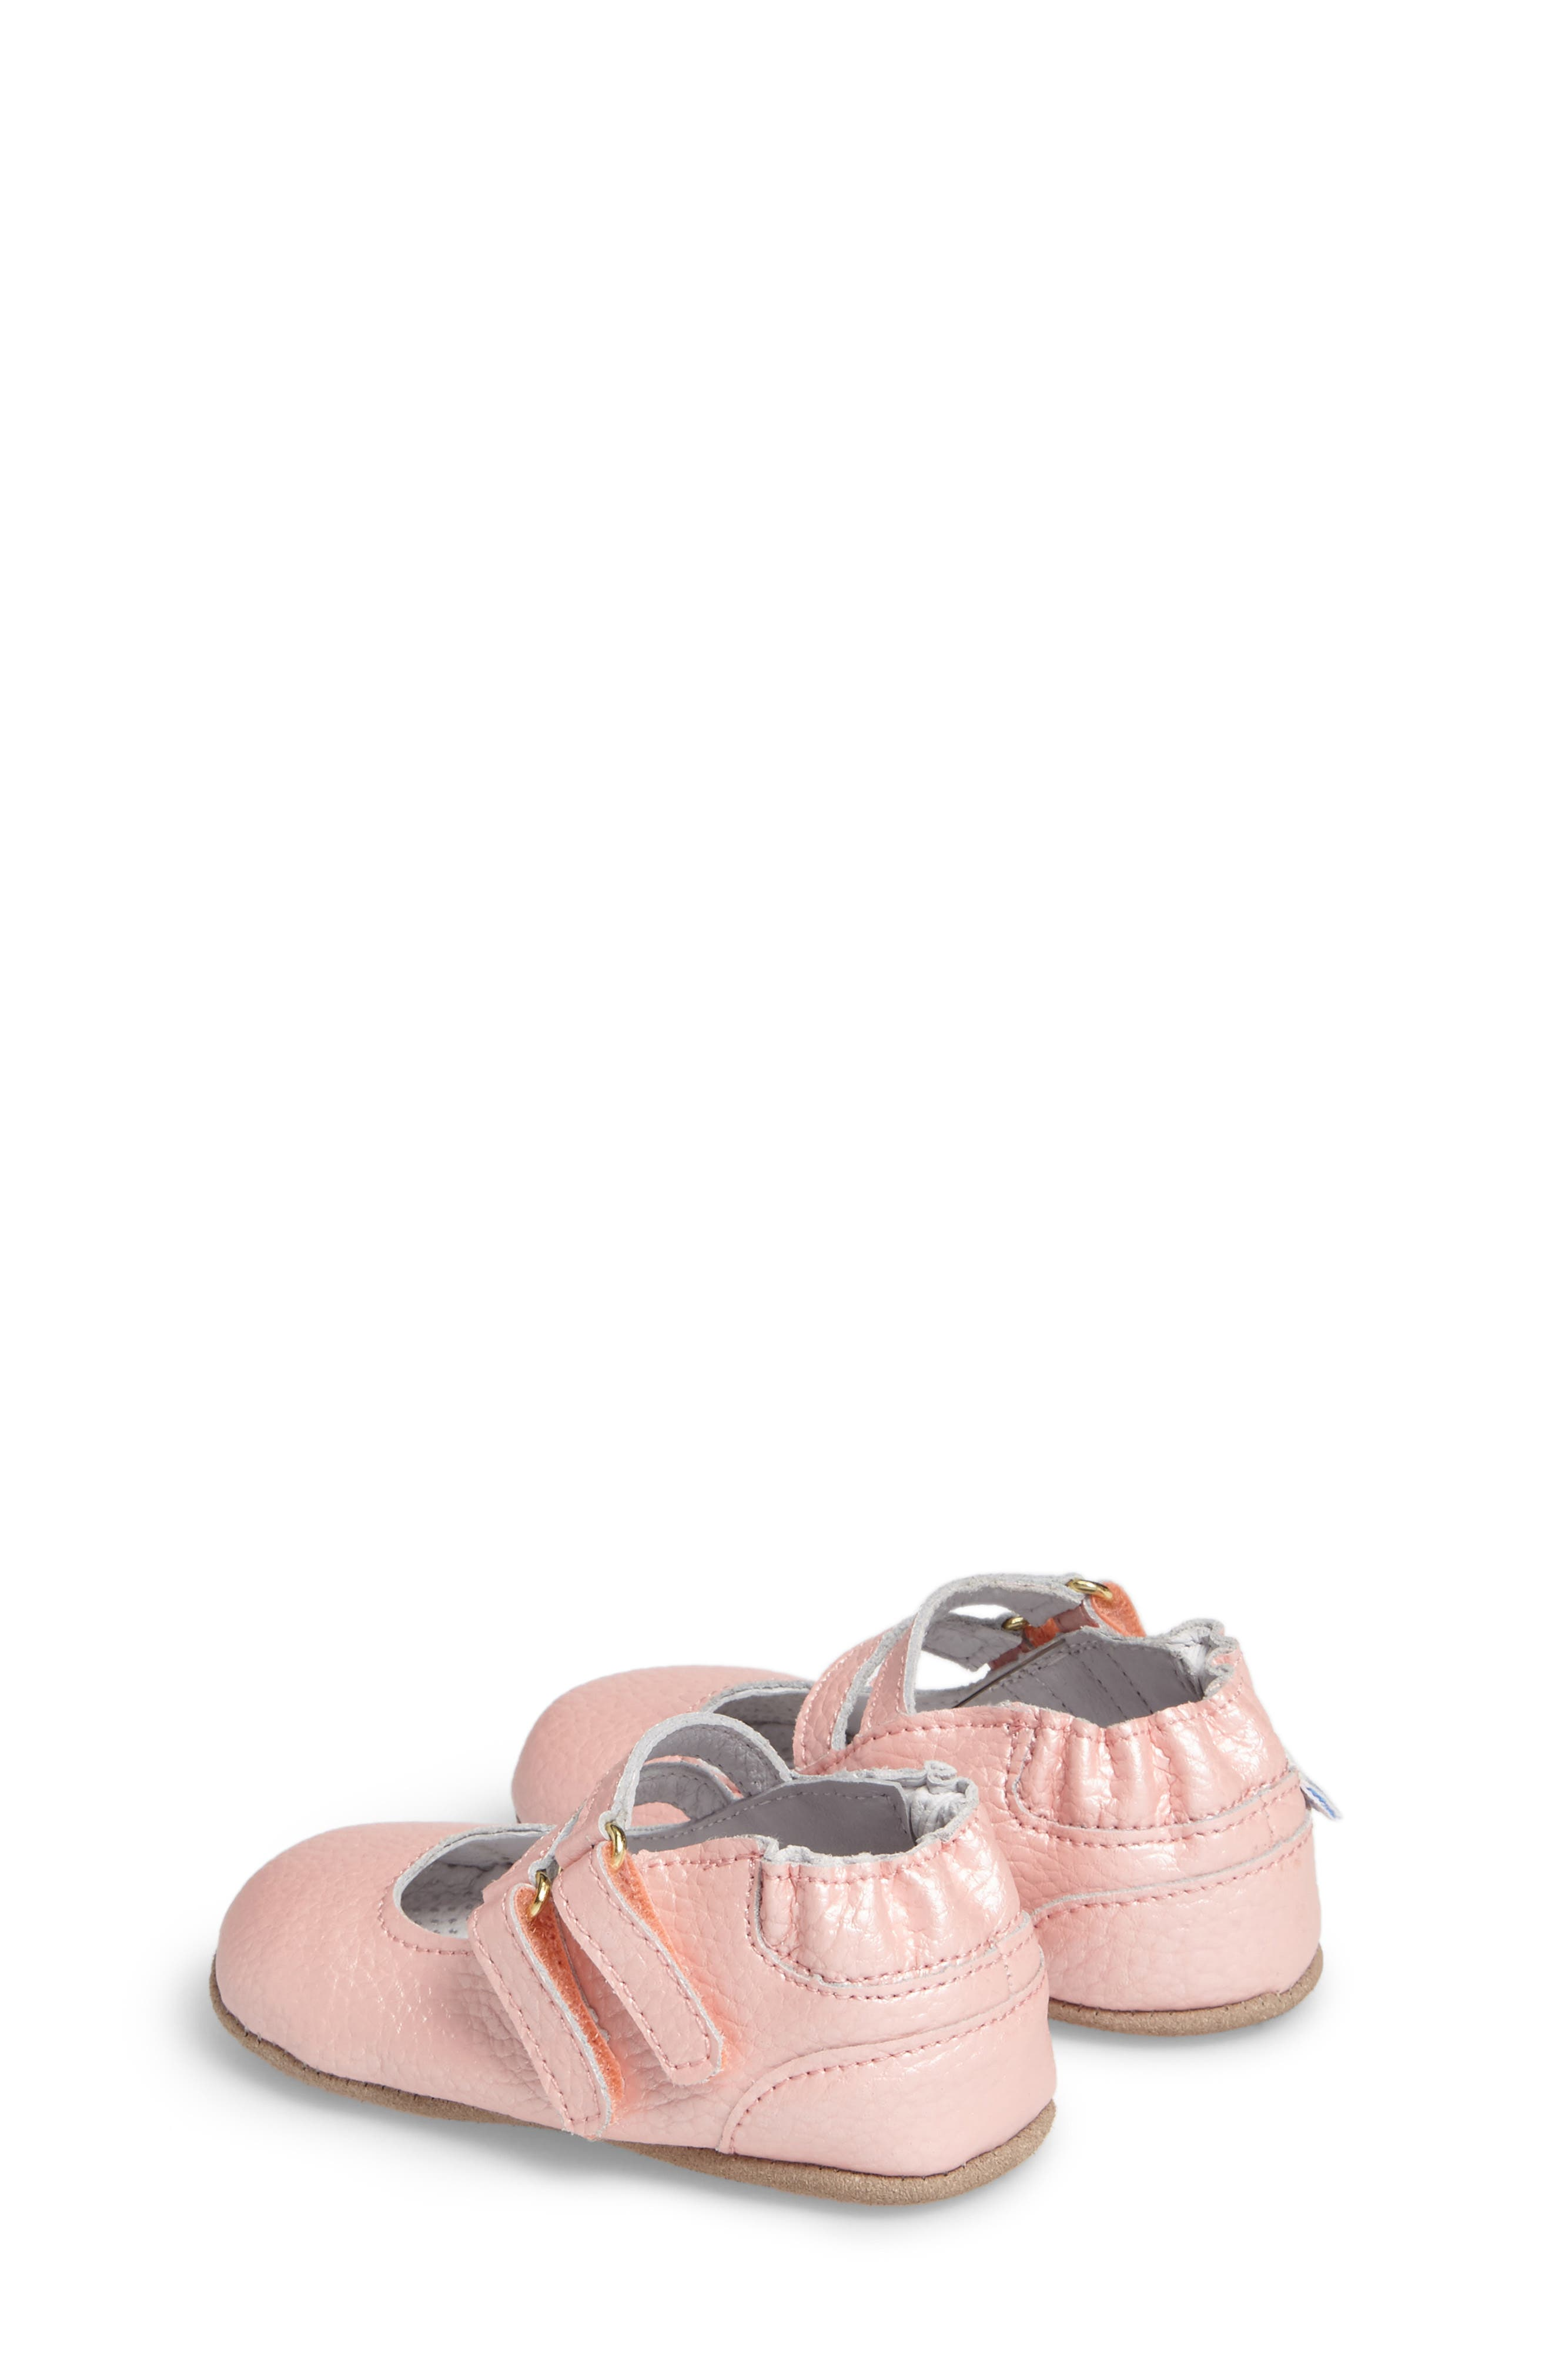 Rose Mary Jane Crib Shoe,                             Alternate thumbnail 2, color,                             ROSE